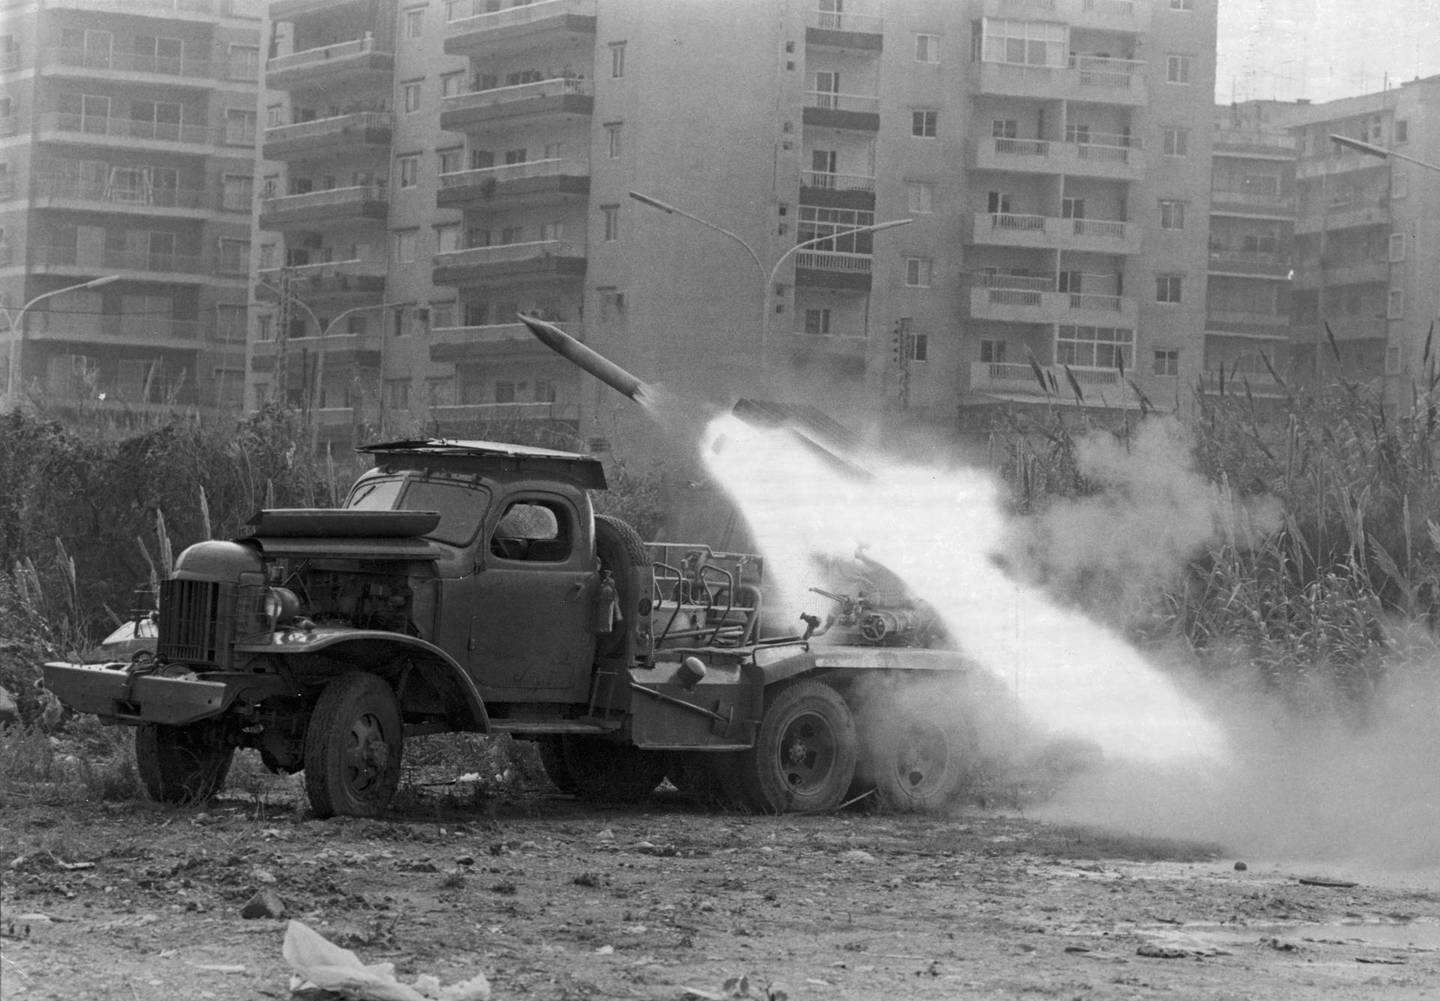 A katyusha rocket is fired from the back of an army truck into an apartment complex during the Lebanese Civil War, Lebanon, probably 1975. The war, which lasted until 1990, was fought between a bewildering array of sectarian, ideological, and foreign armed factions in continuously shifting alliances. Most prominent were the rightist Maronite Christian Phalangists, the secular Palestinian PLO, the Israelis, the Syrians, the Druze, the Shiite Amal, and Hezbollah. (Photo by Express/Getty Images)